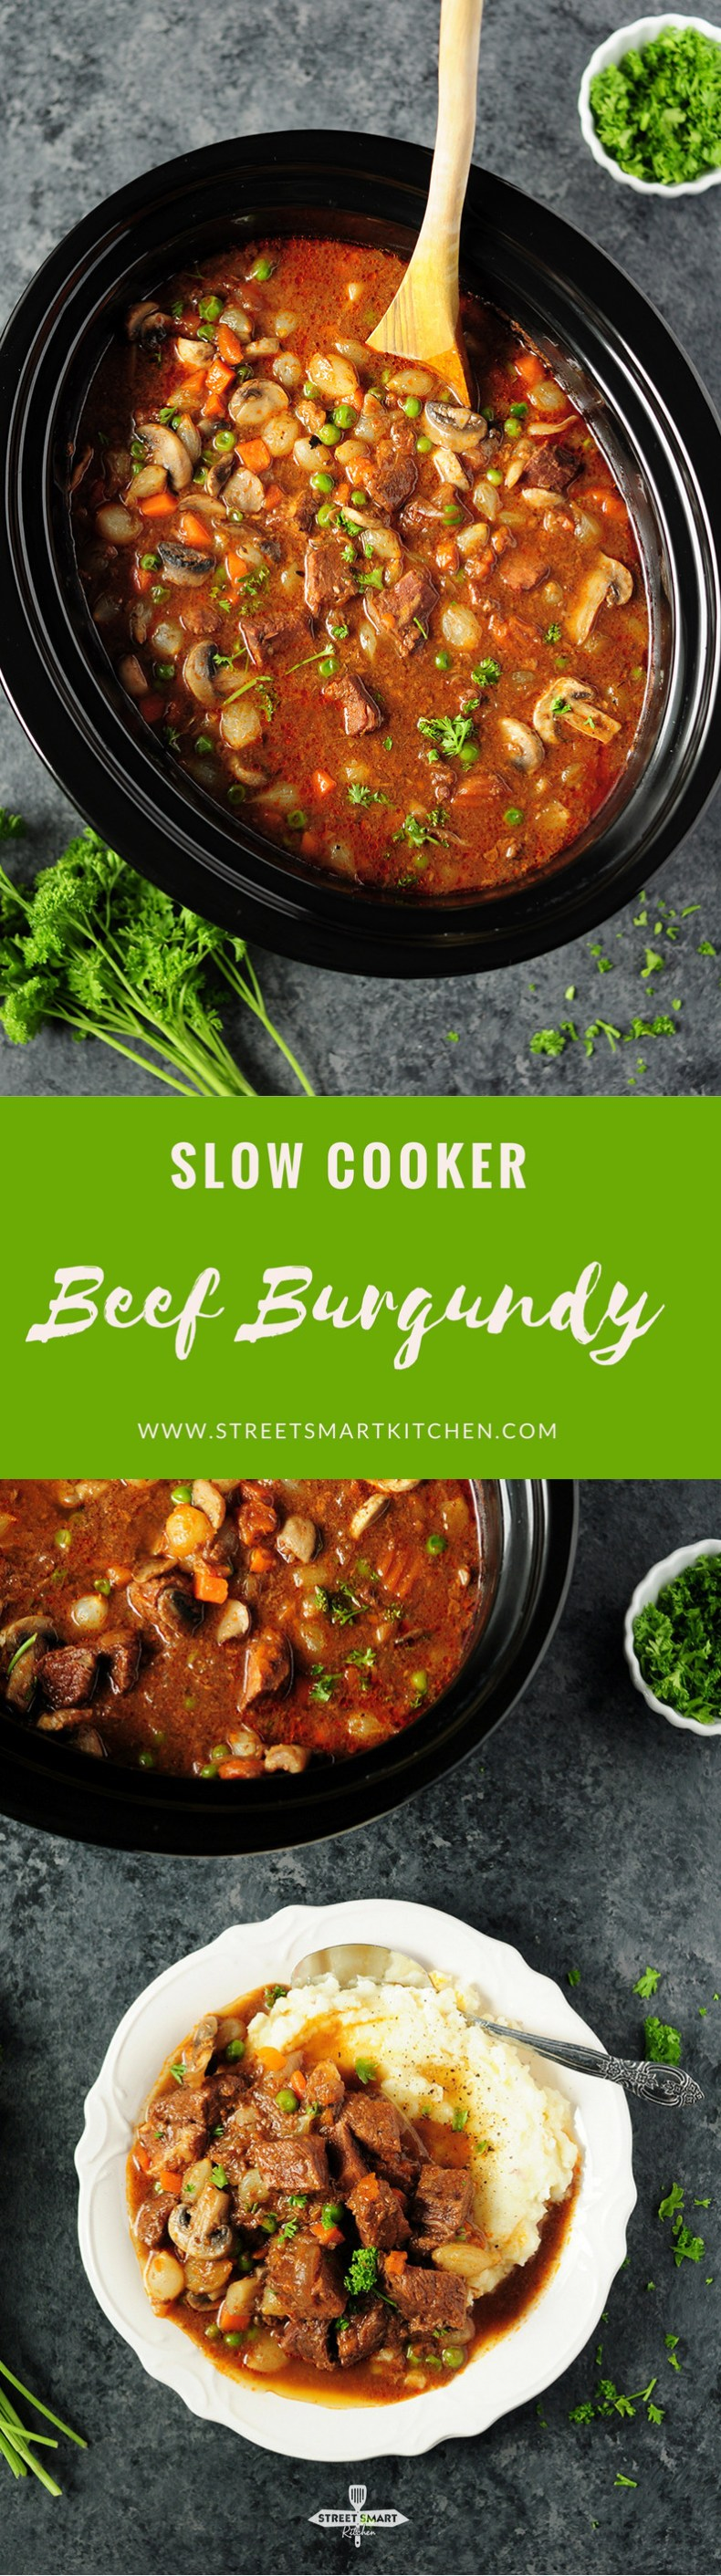 For a weeknight meal, this savory and scrumptious beef burgundy can be easily put together in aslow cooker to simplify the process!